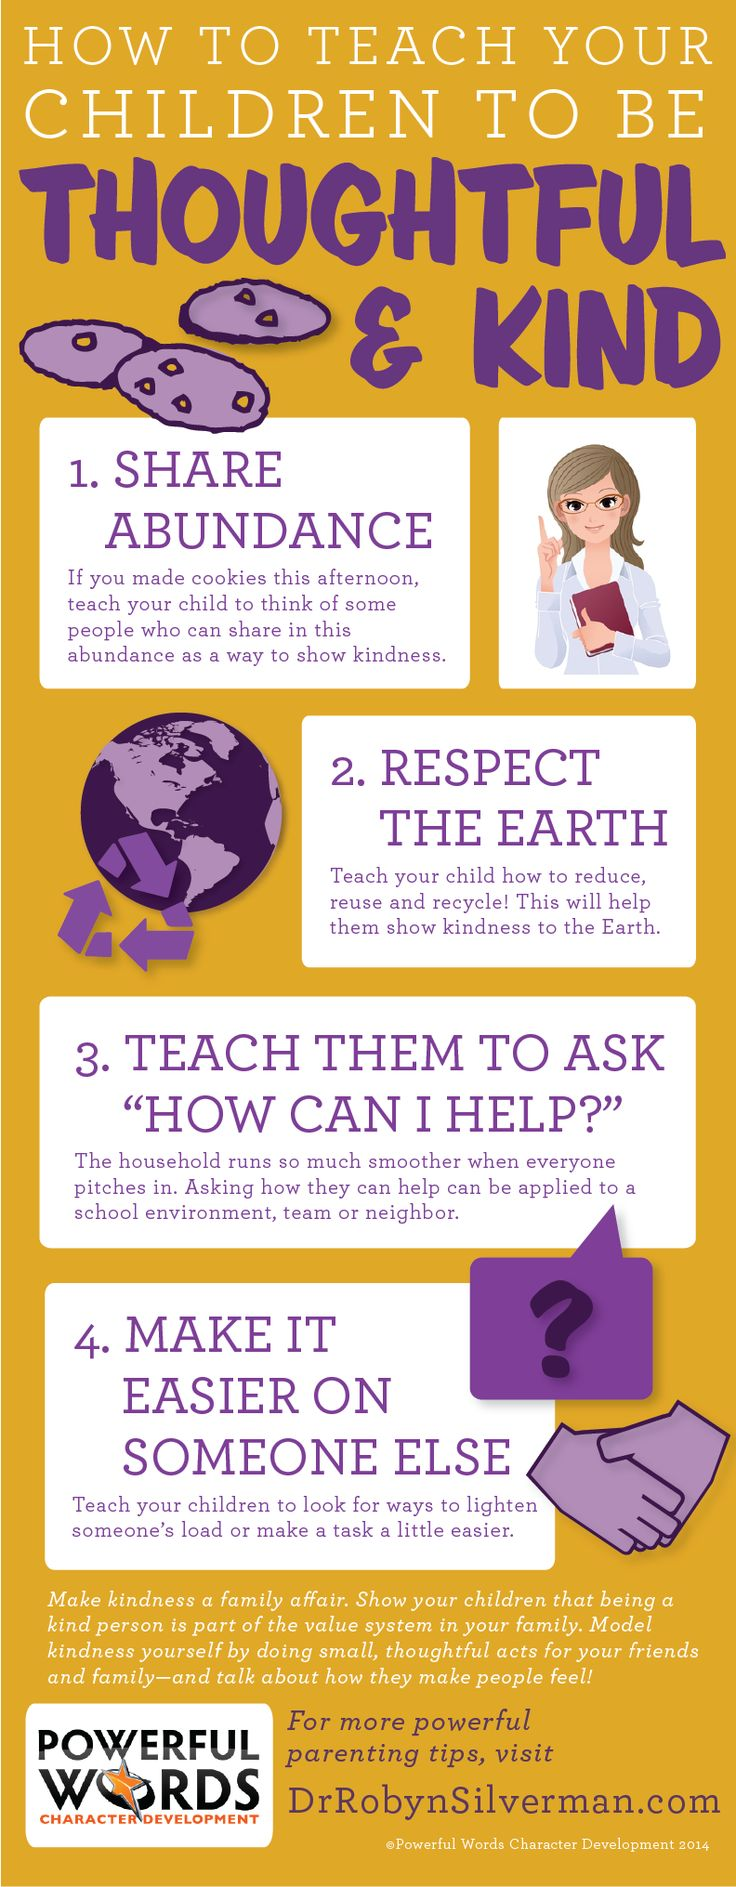 How to teach your children to be thoughtful and #kind #parenting #drrobyn http://menloparkmartialarts.com